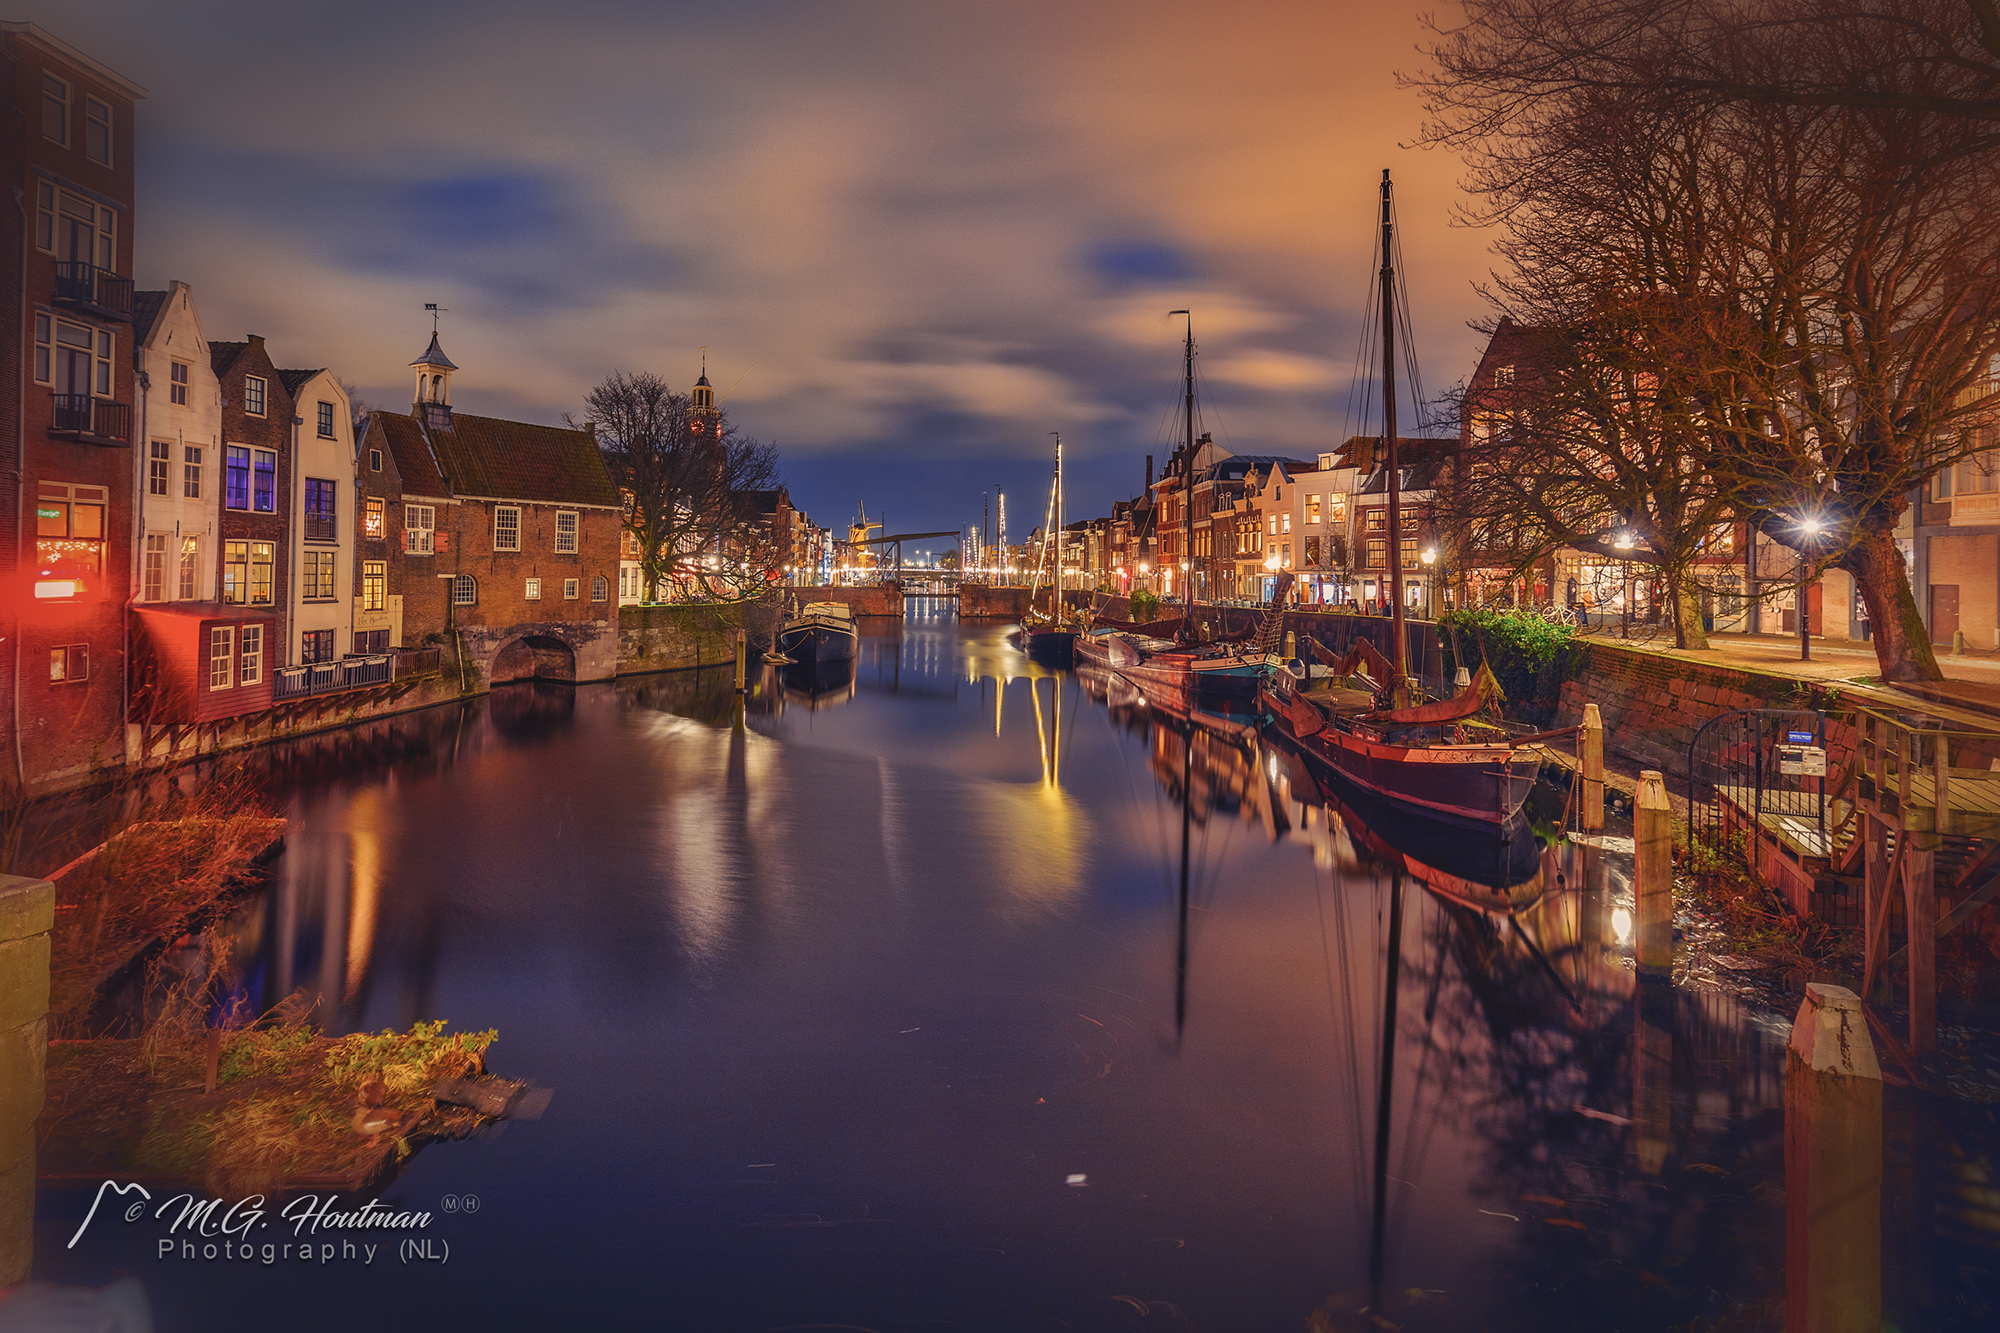 Delfshaven @ Night (NL)